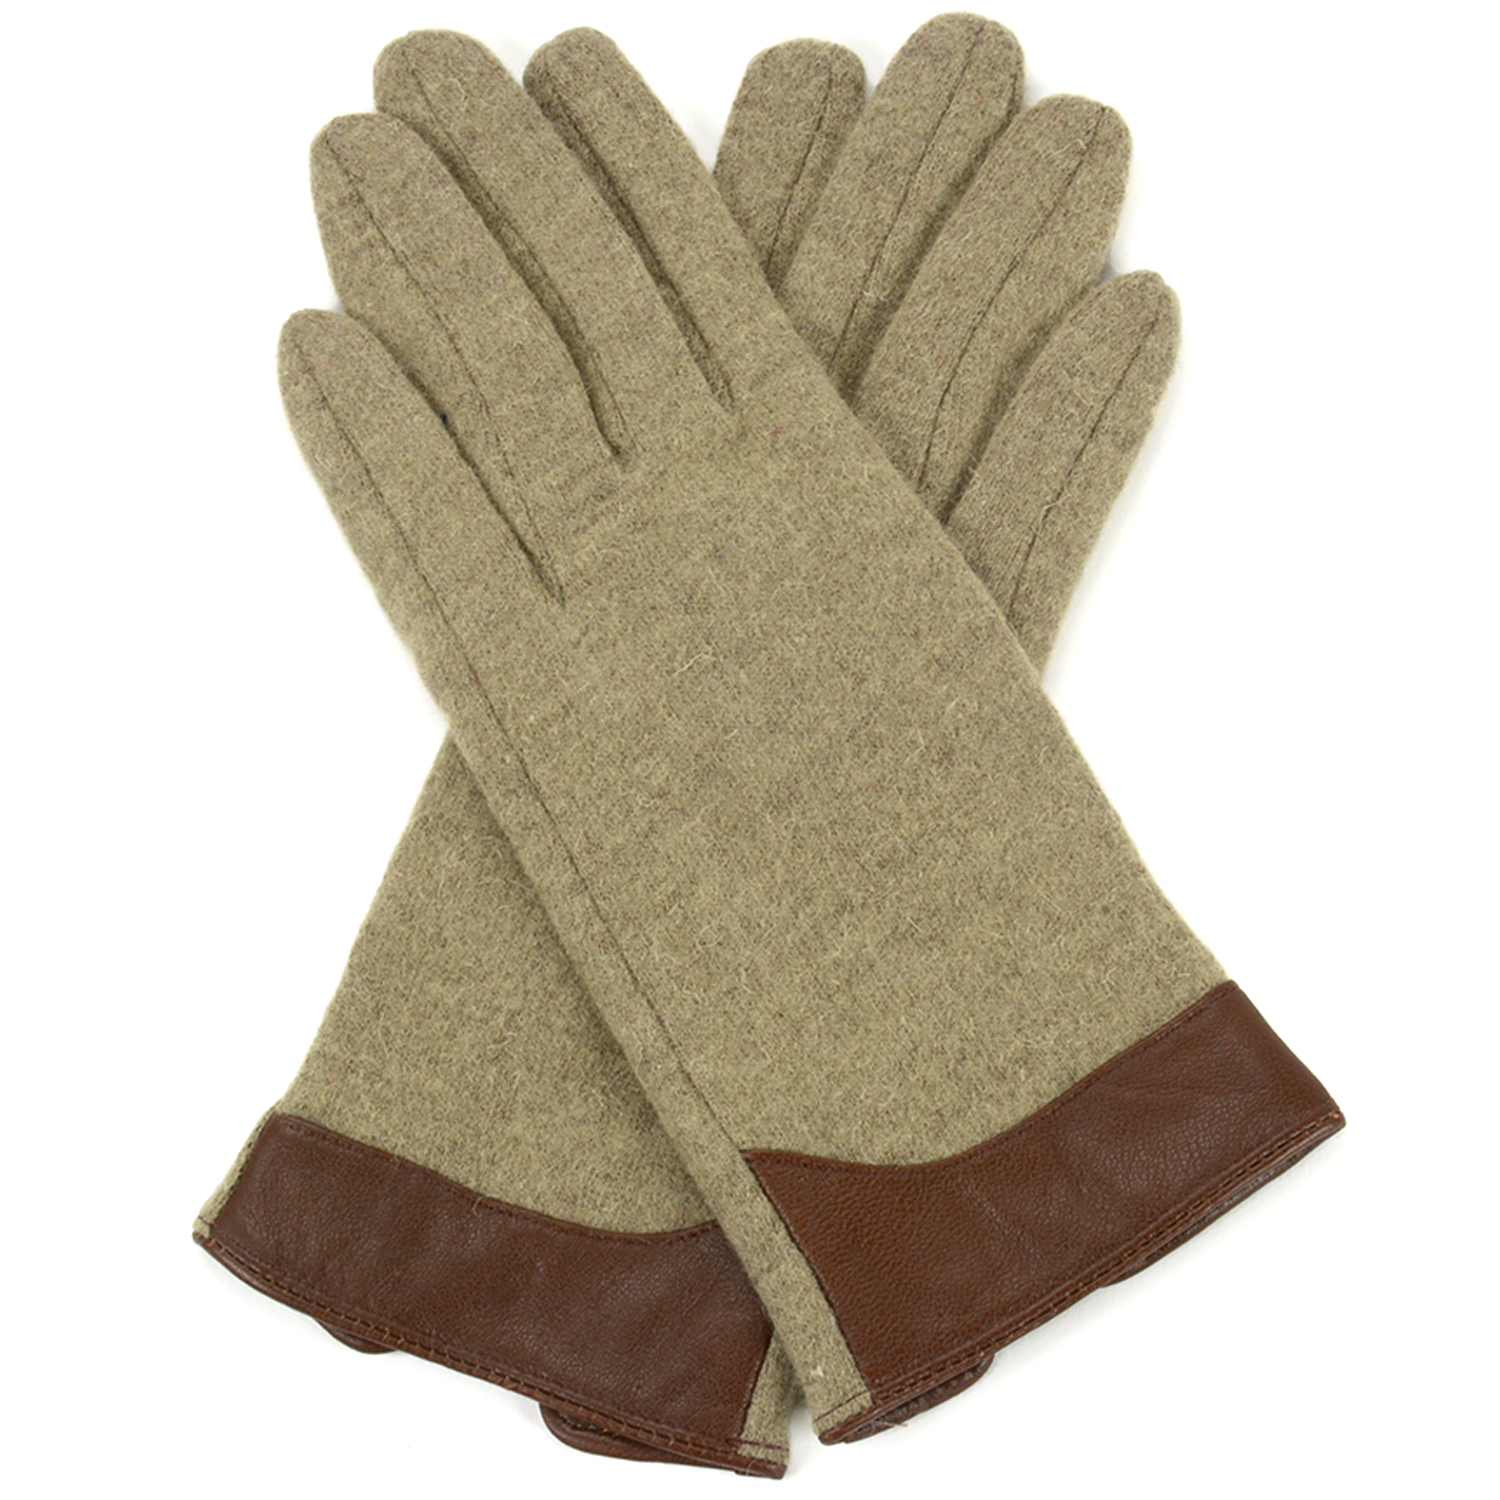 Alpine Swiss Womens Evening Gloves Leather Trim Touchscreen Texting Wool Mittens by alpine swiss